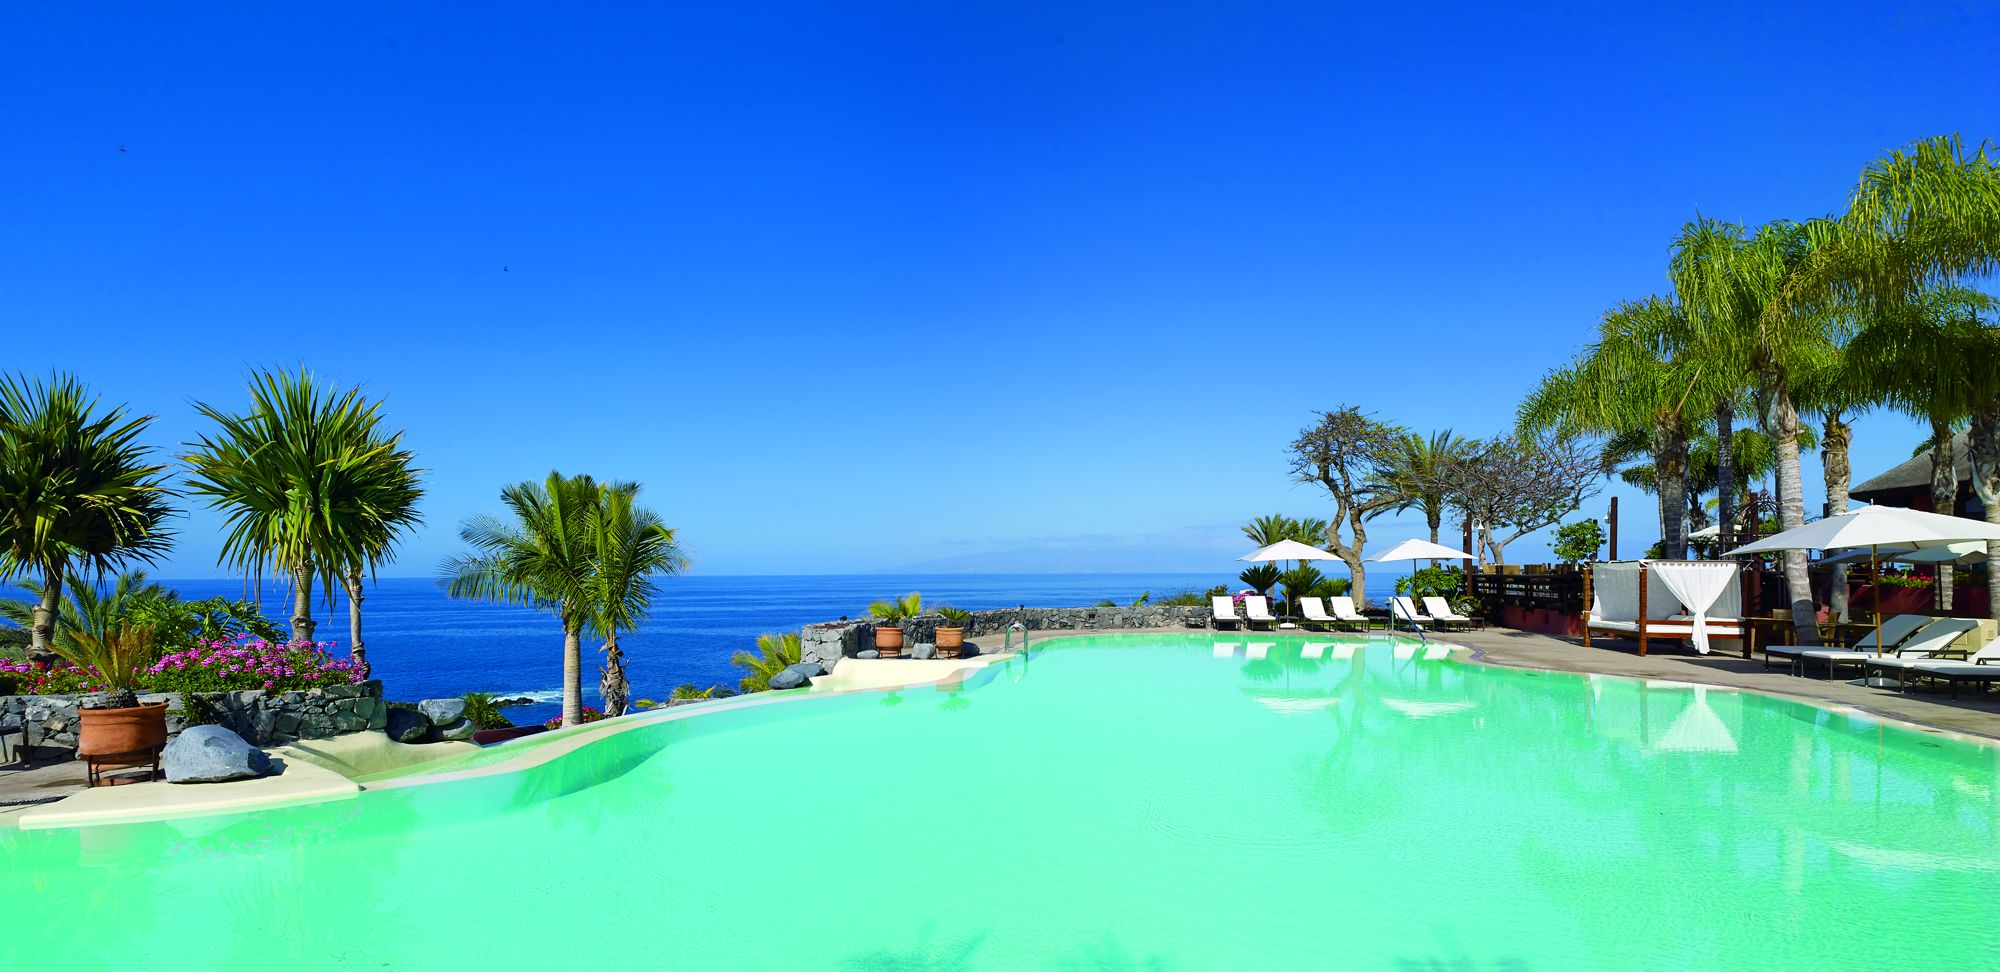 Map Of Southern Spain Resorts.Spain Luxury Hotels Beach Resorts The Ritz Carlton